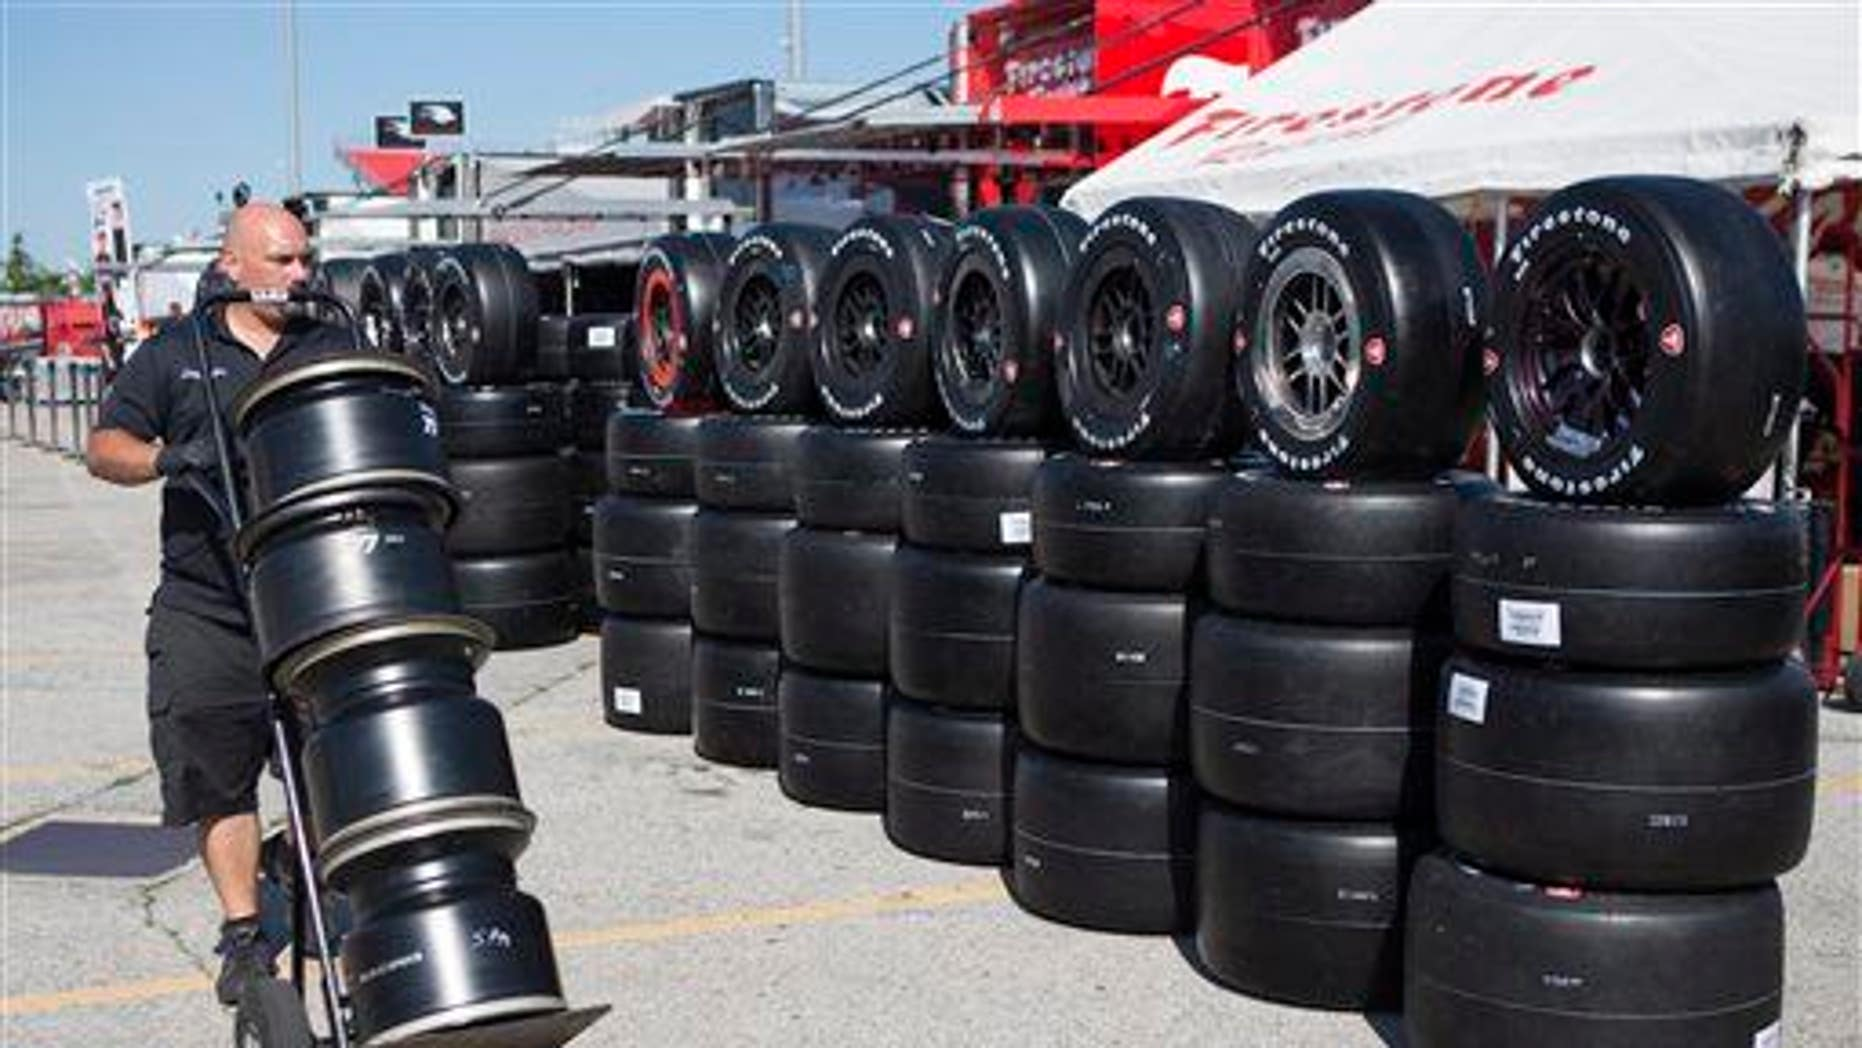 A technician carries rims to the Firestone Tires team as crews prepare for the Honda Indy Toronto IndyCar auto race in Toronto, Thursday, July 11, 2013.